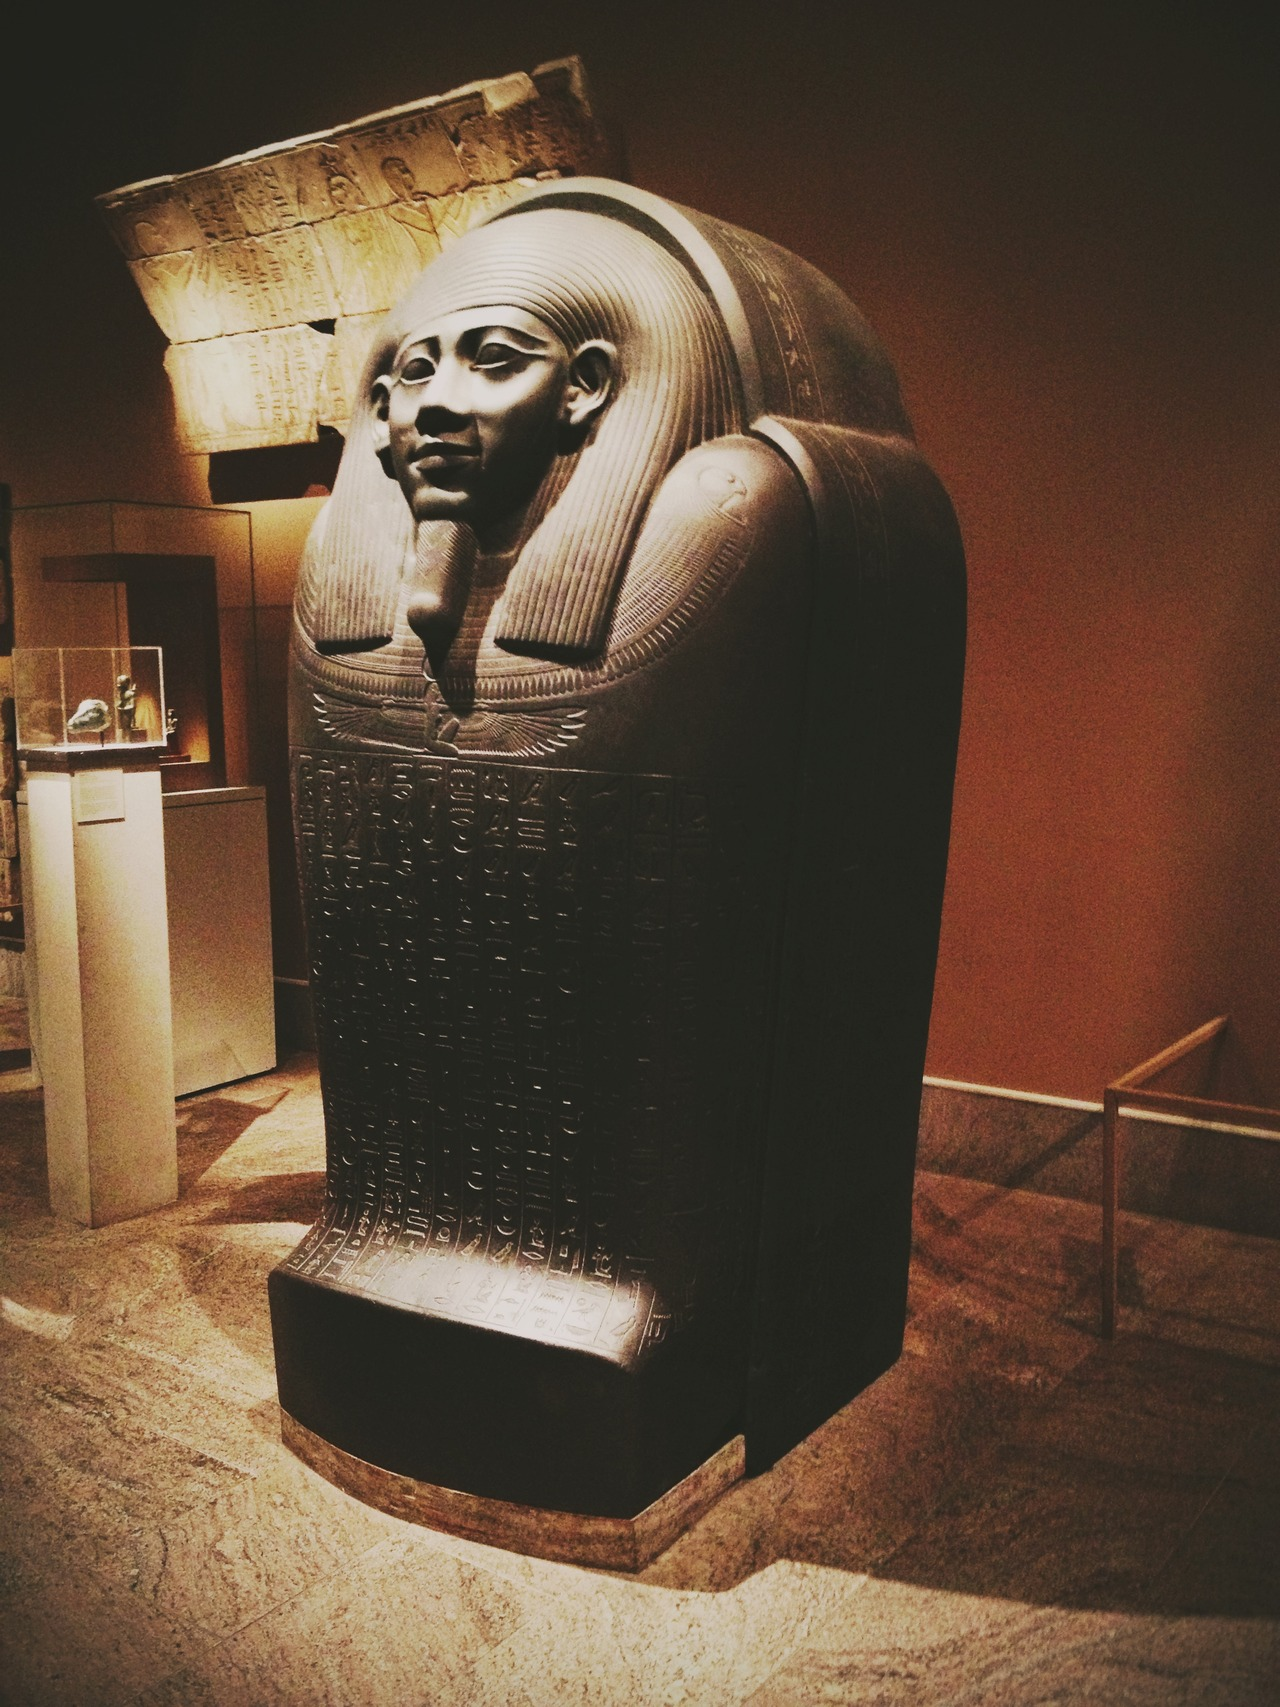 Sarcophagus at The MET #peppersearching #pepper #photos #sarcophagus #met